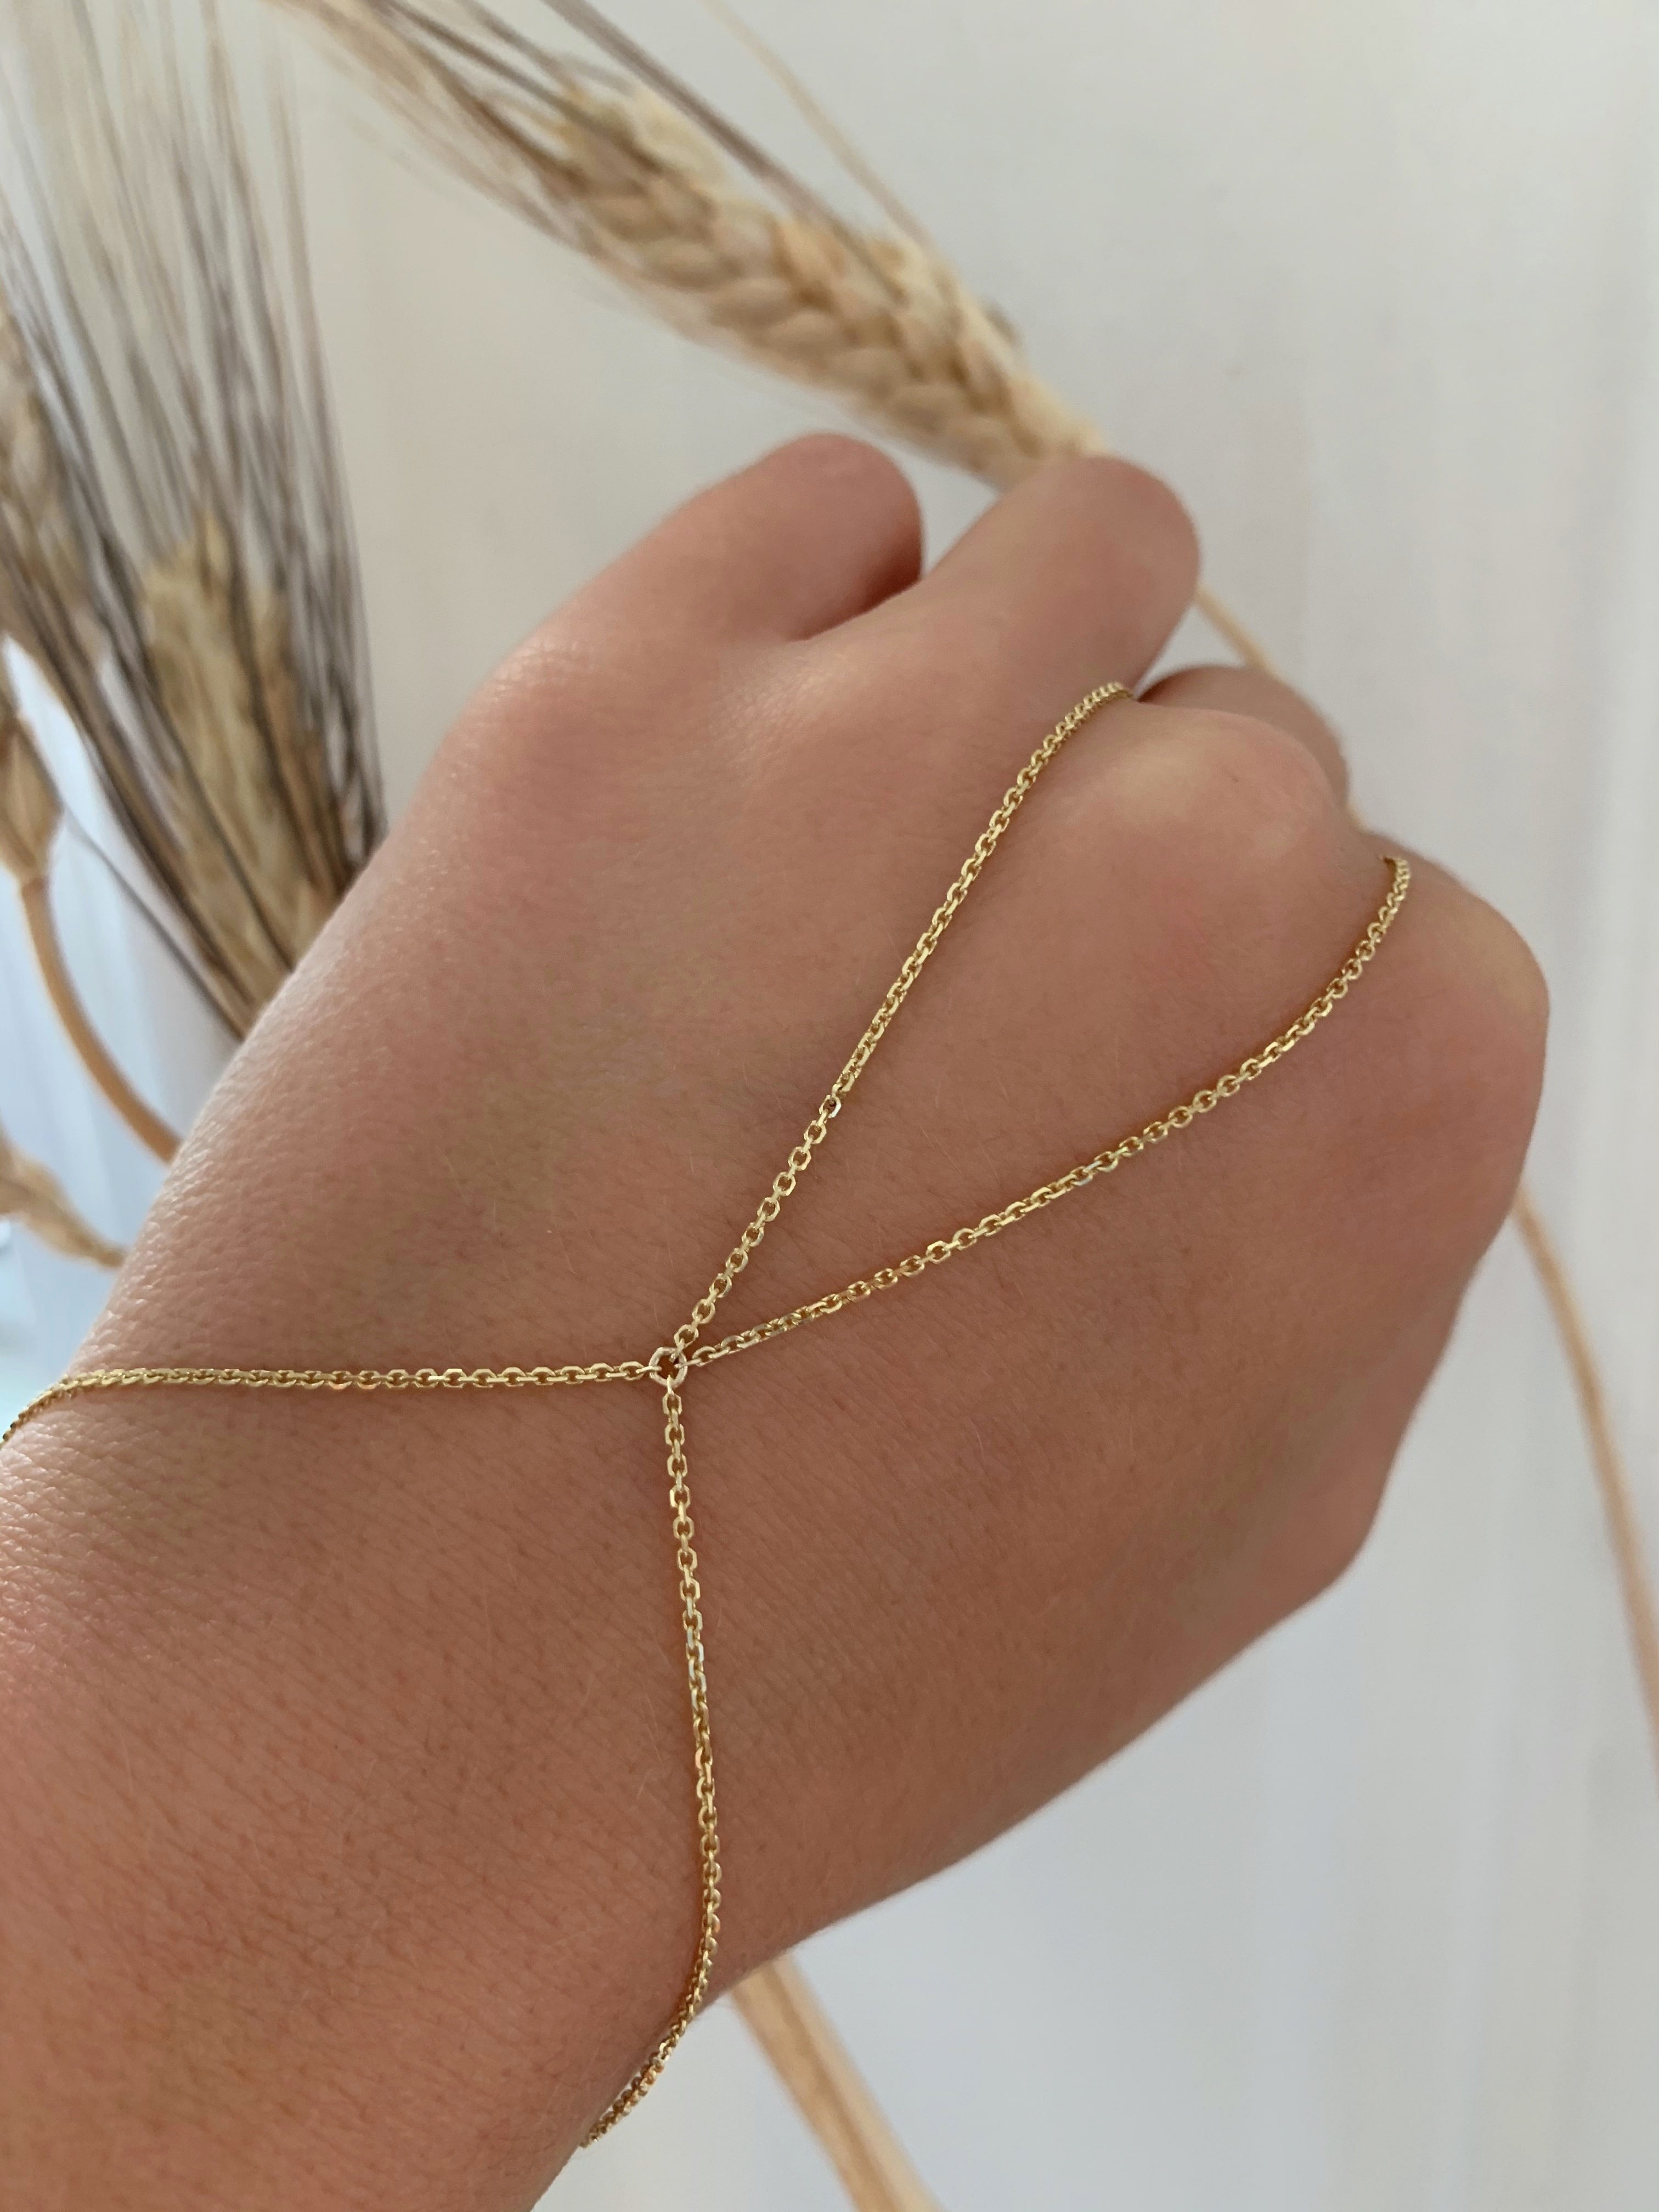 14k Solid Gold Hand Chain